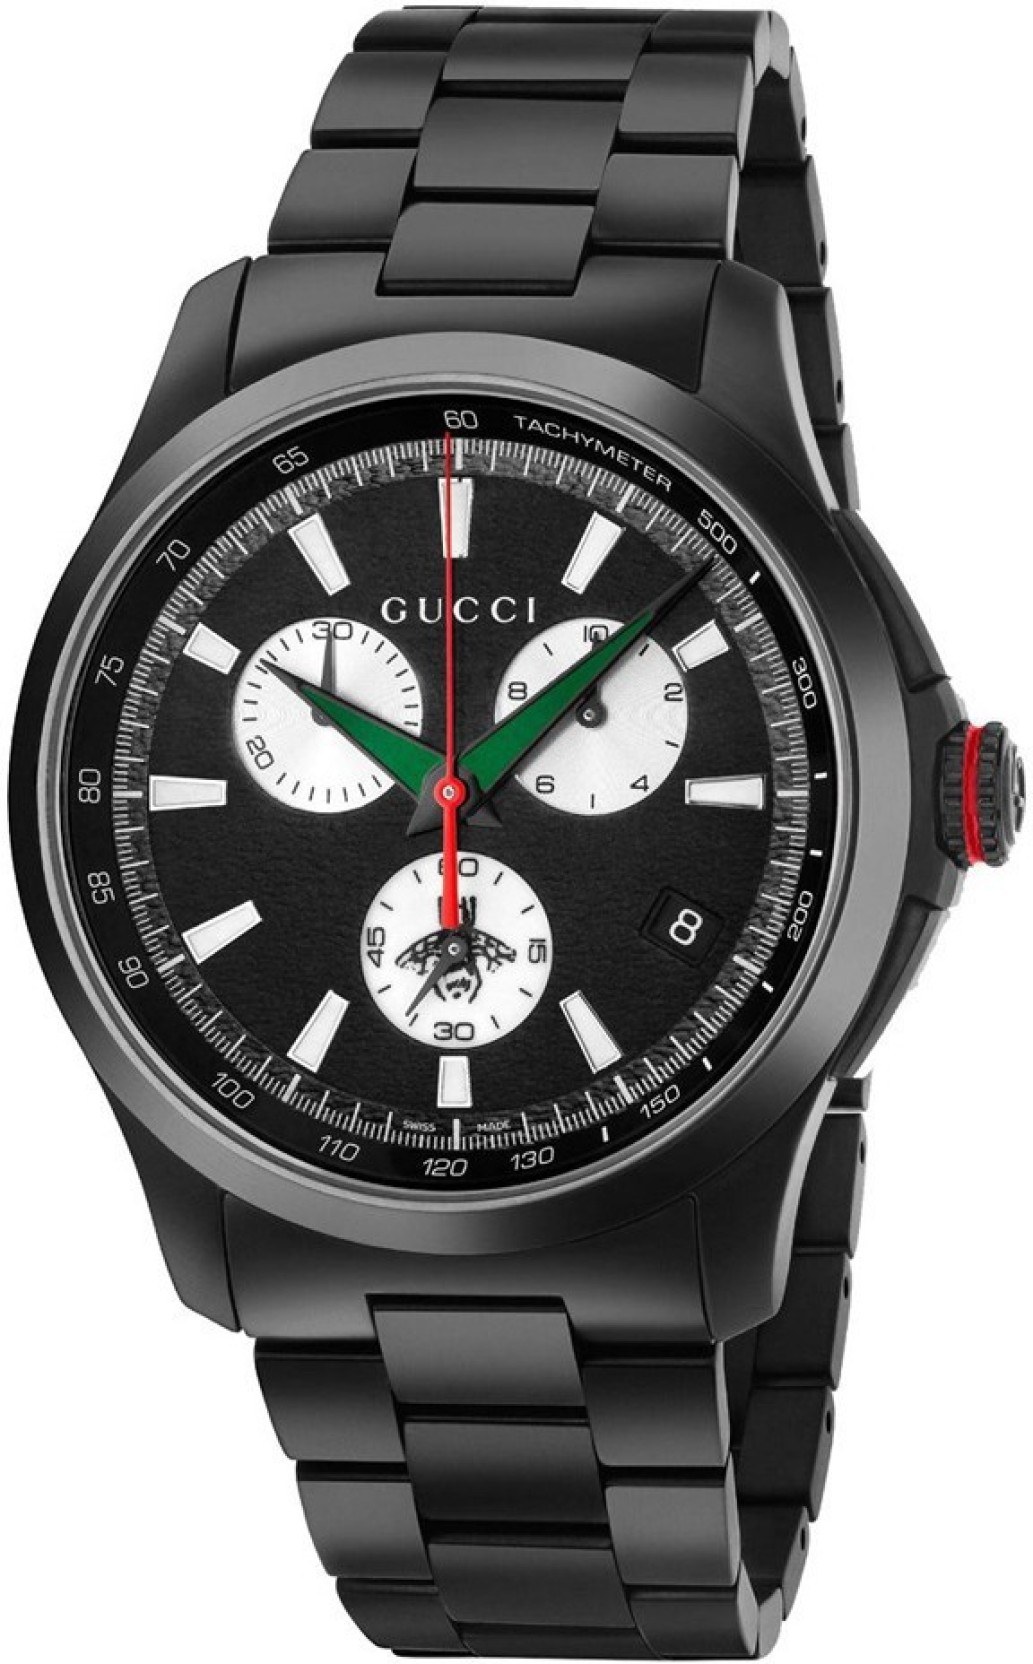 079ace0479f GUCCI YA126268 G-timeless Chronograph XL Black Dial Watch - For Men. ADD TO  CART